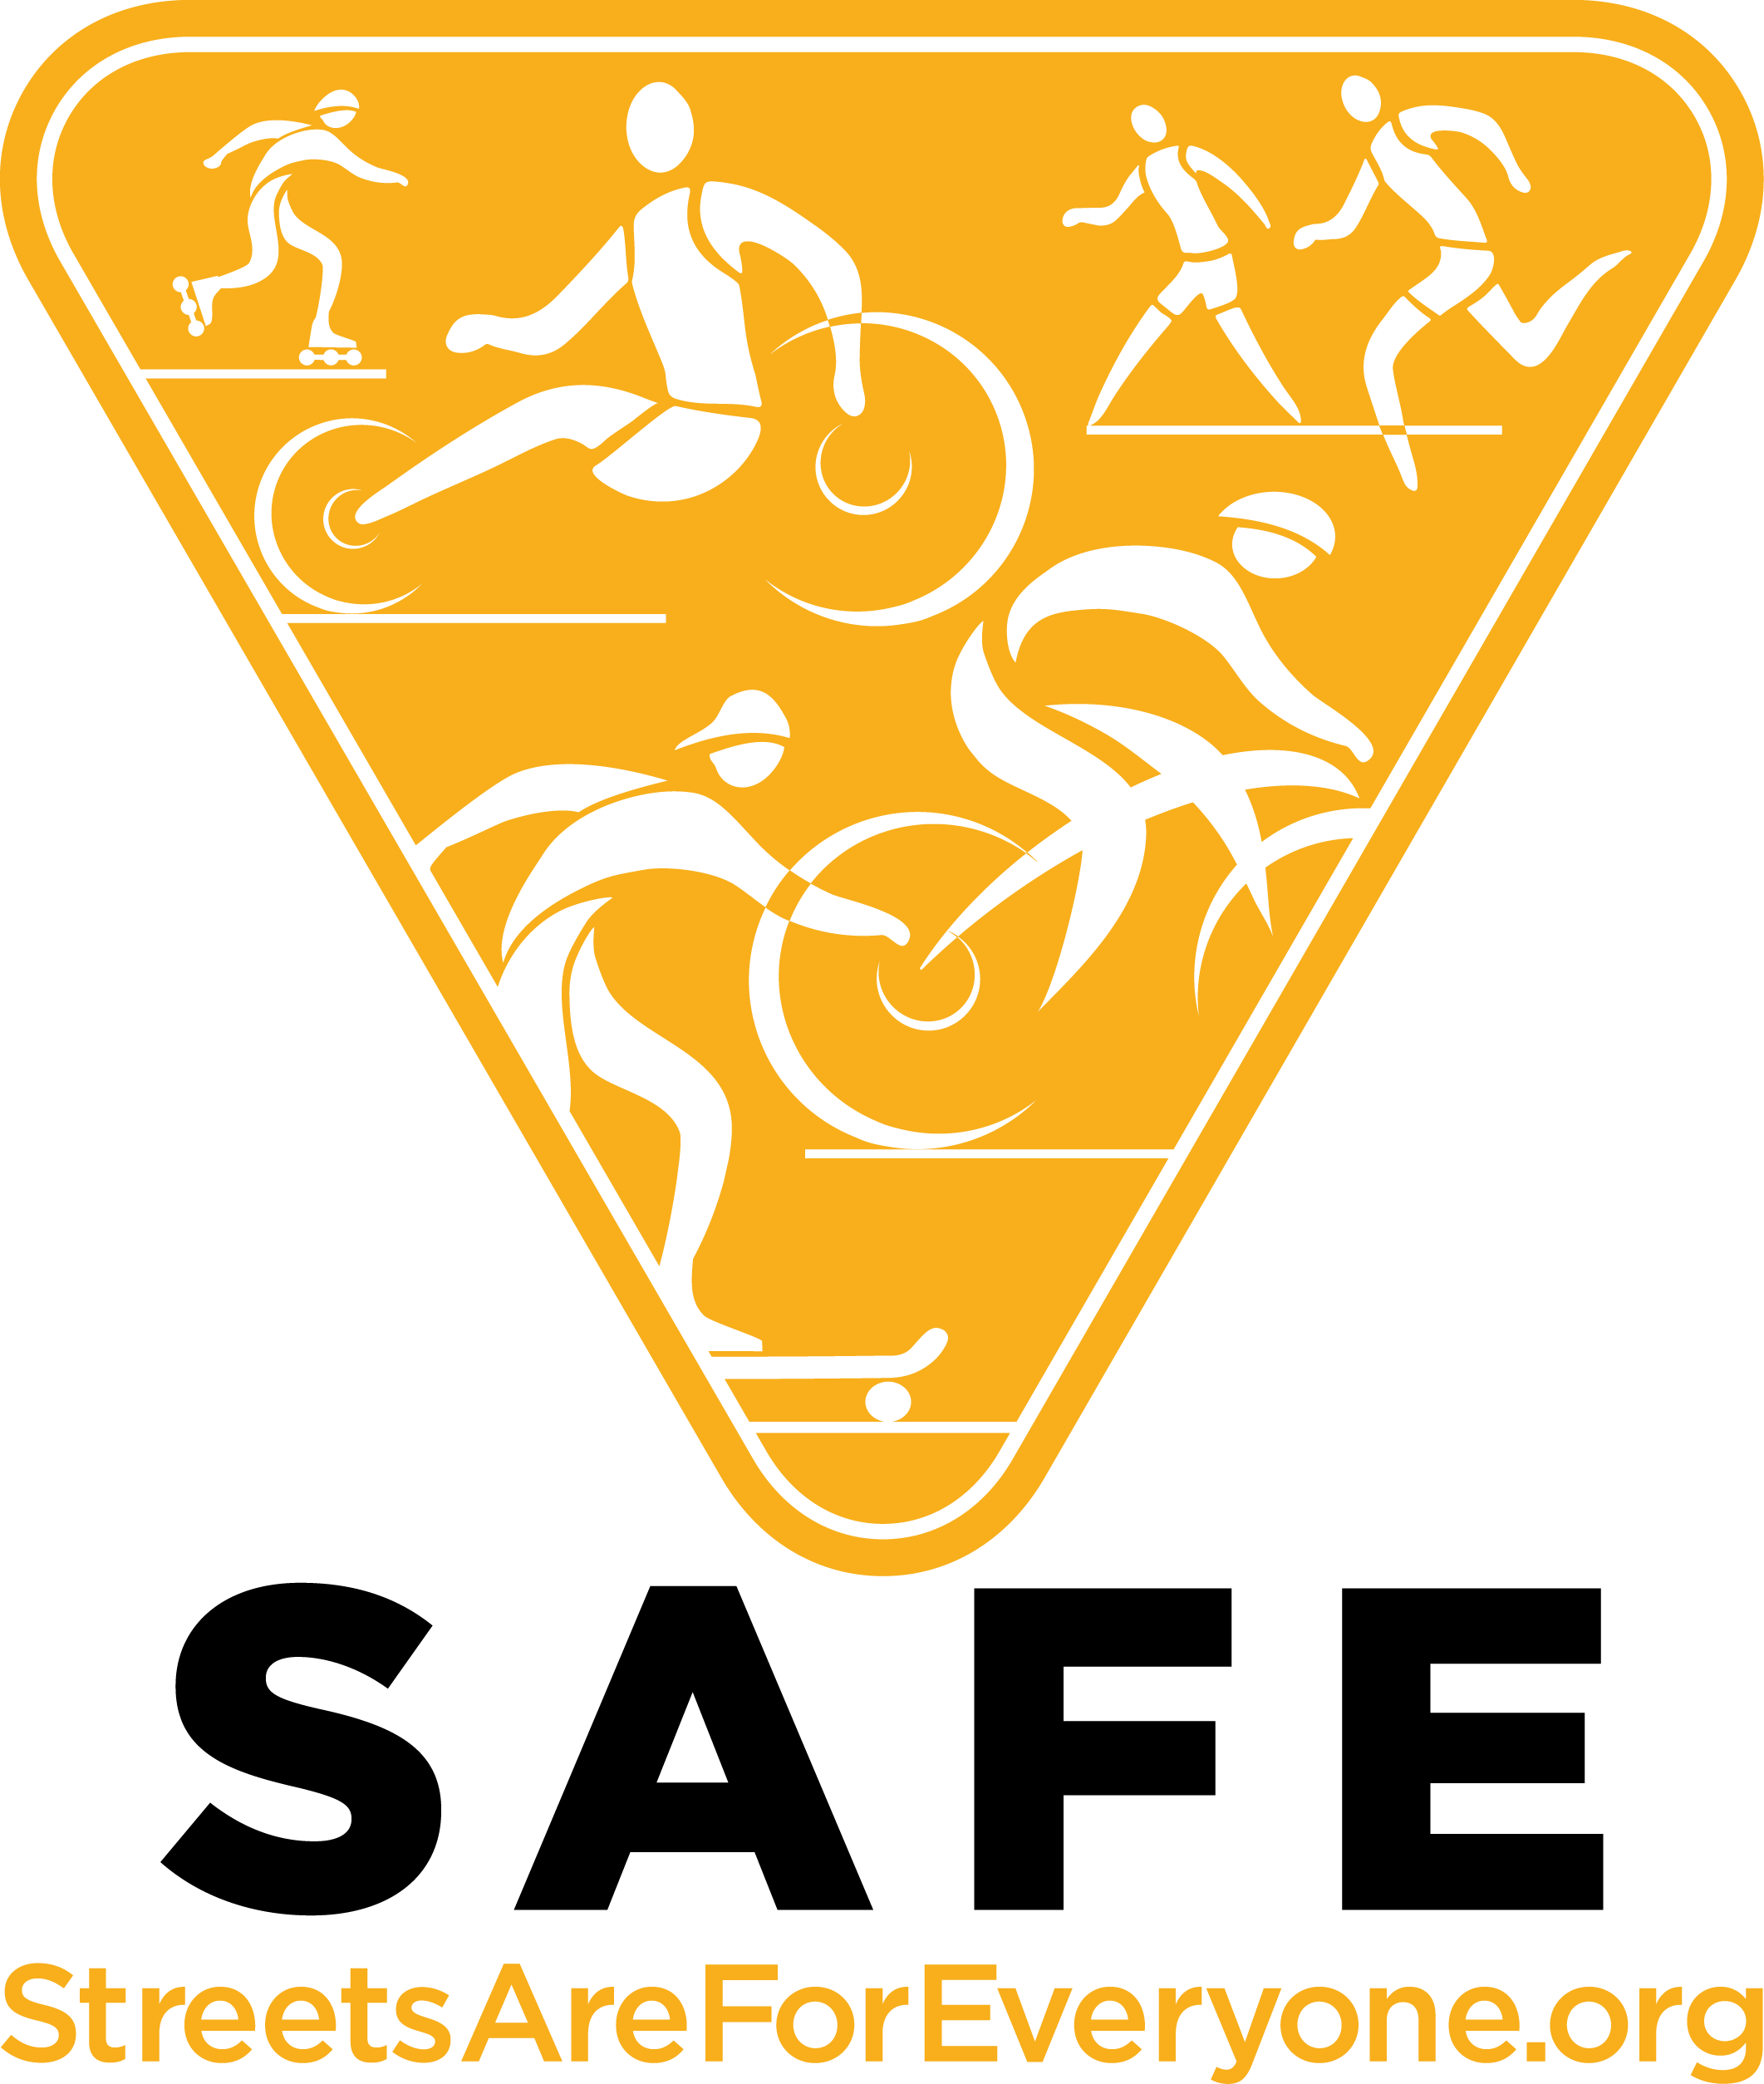 SAFE-dotorg-logo_yellow.png